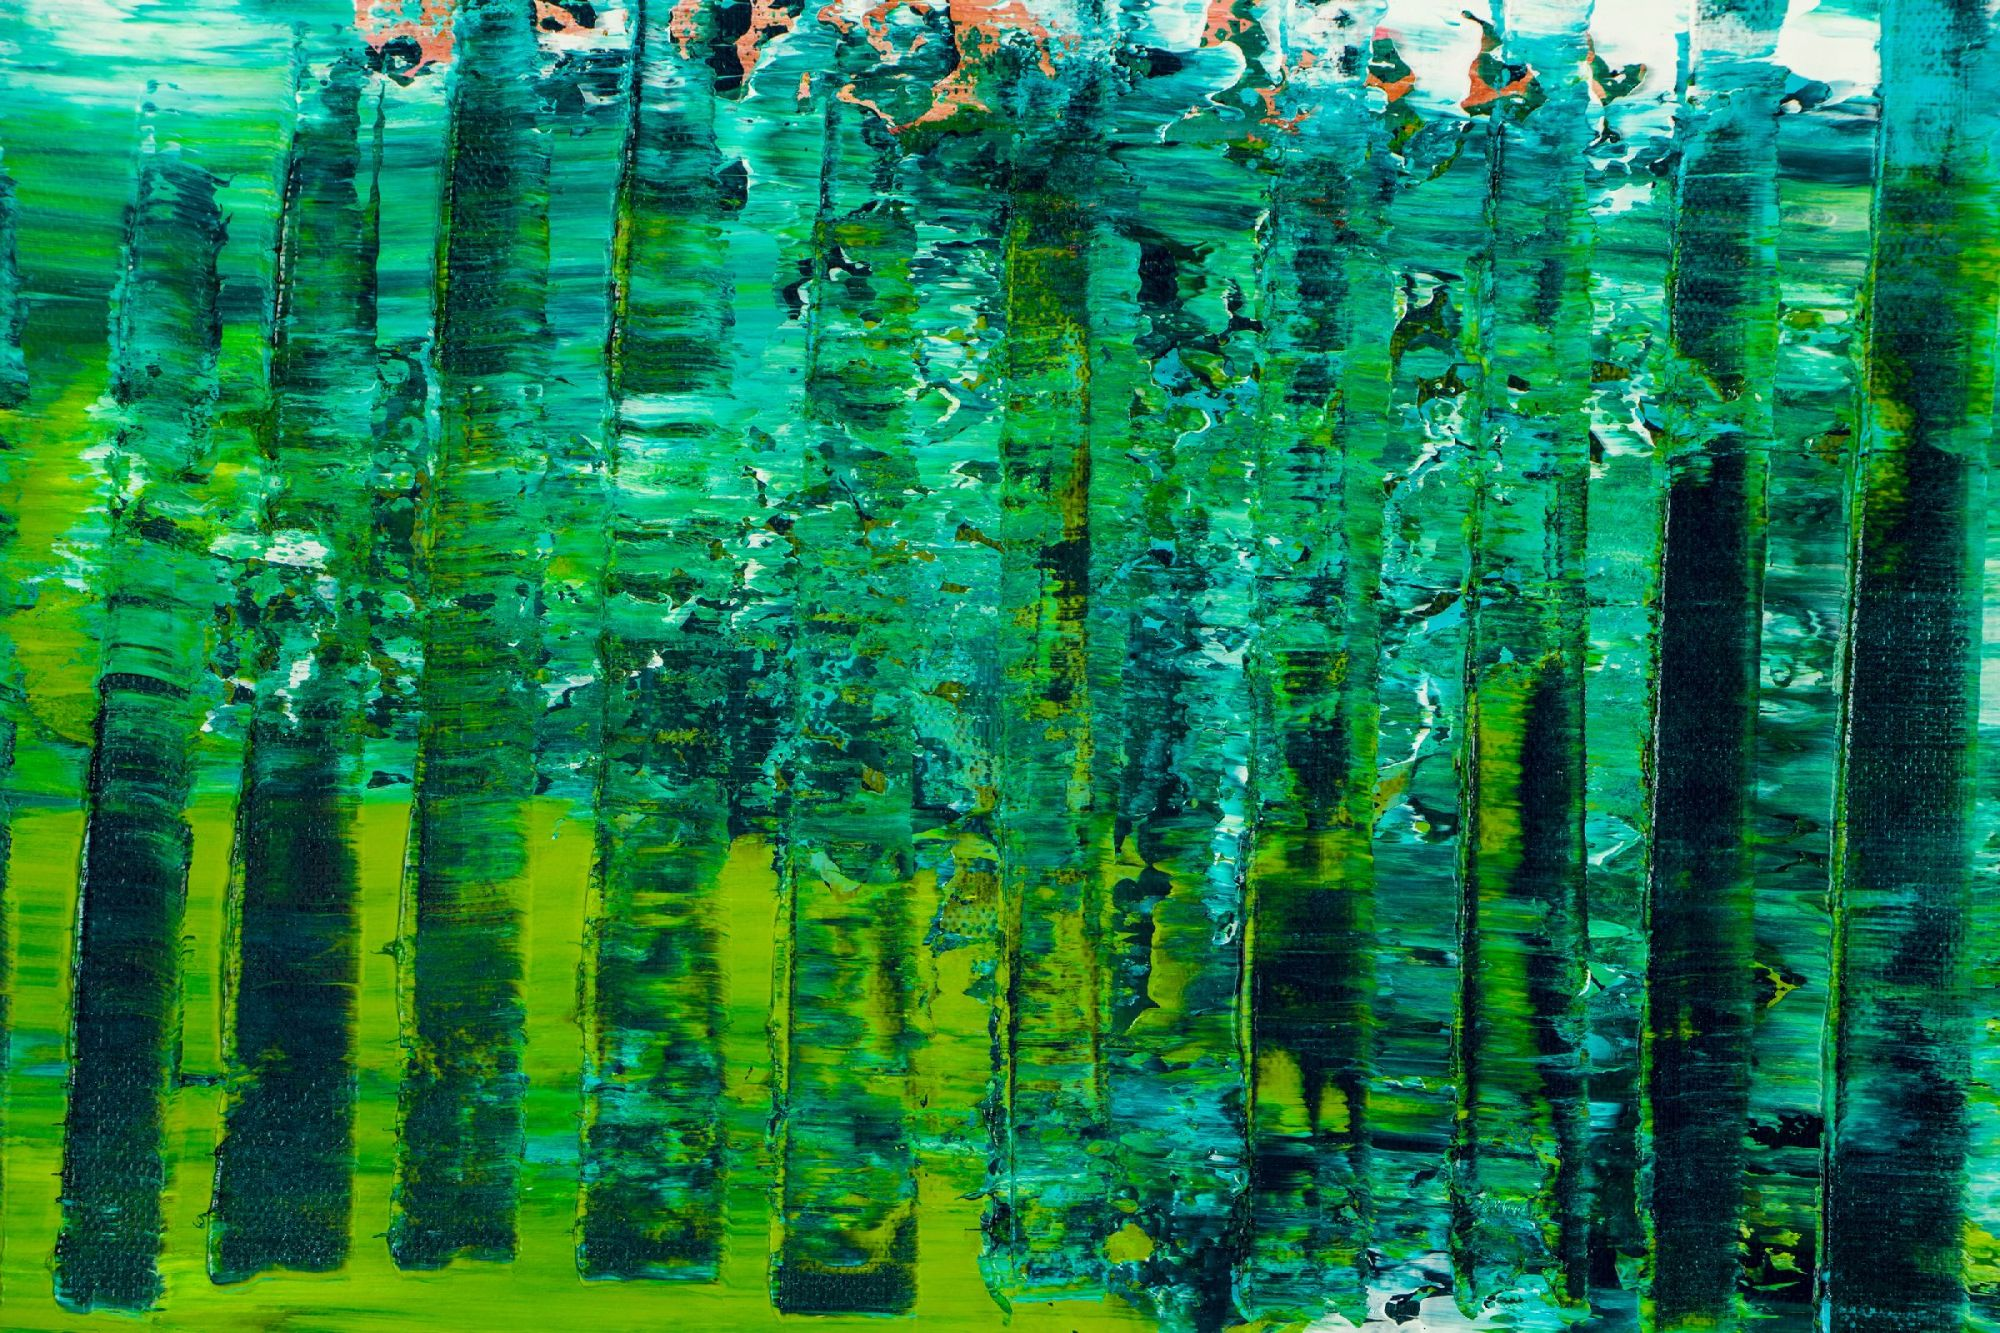 Detail / Forest Mirrors and Light 2 (2020) by Nestor Toro